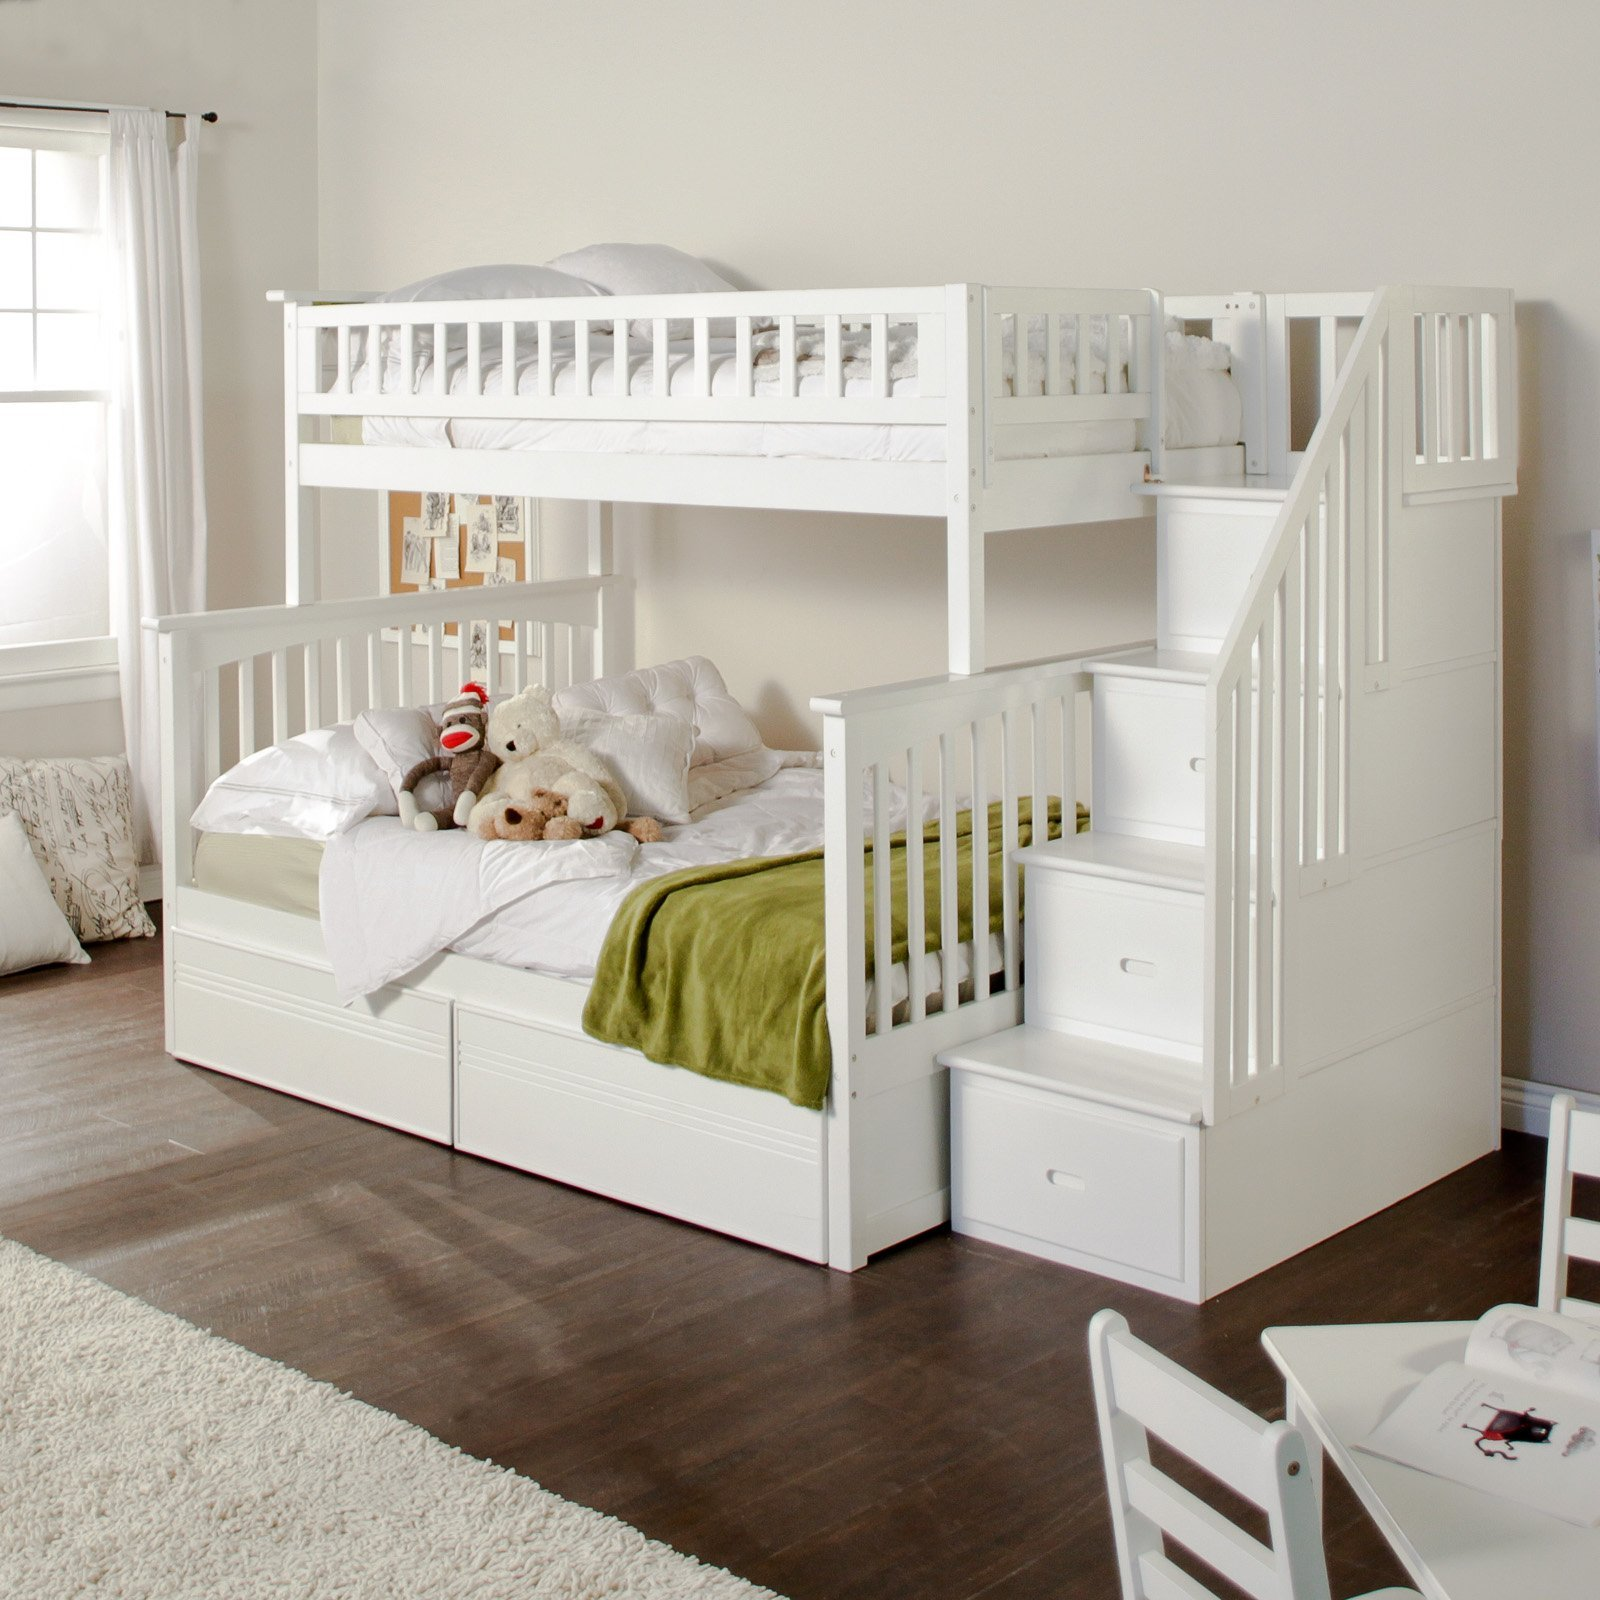 chic wood Bunk Beds With Stairs in white on wooden floor matched with white wall plus white rug for teen bedroom decor ideas